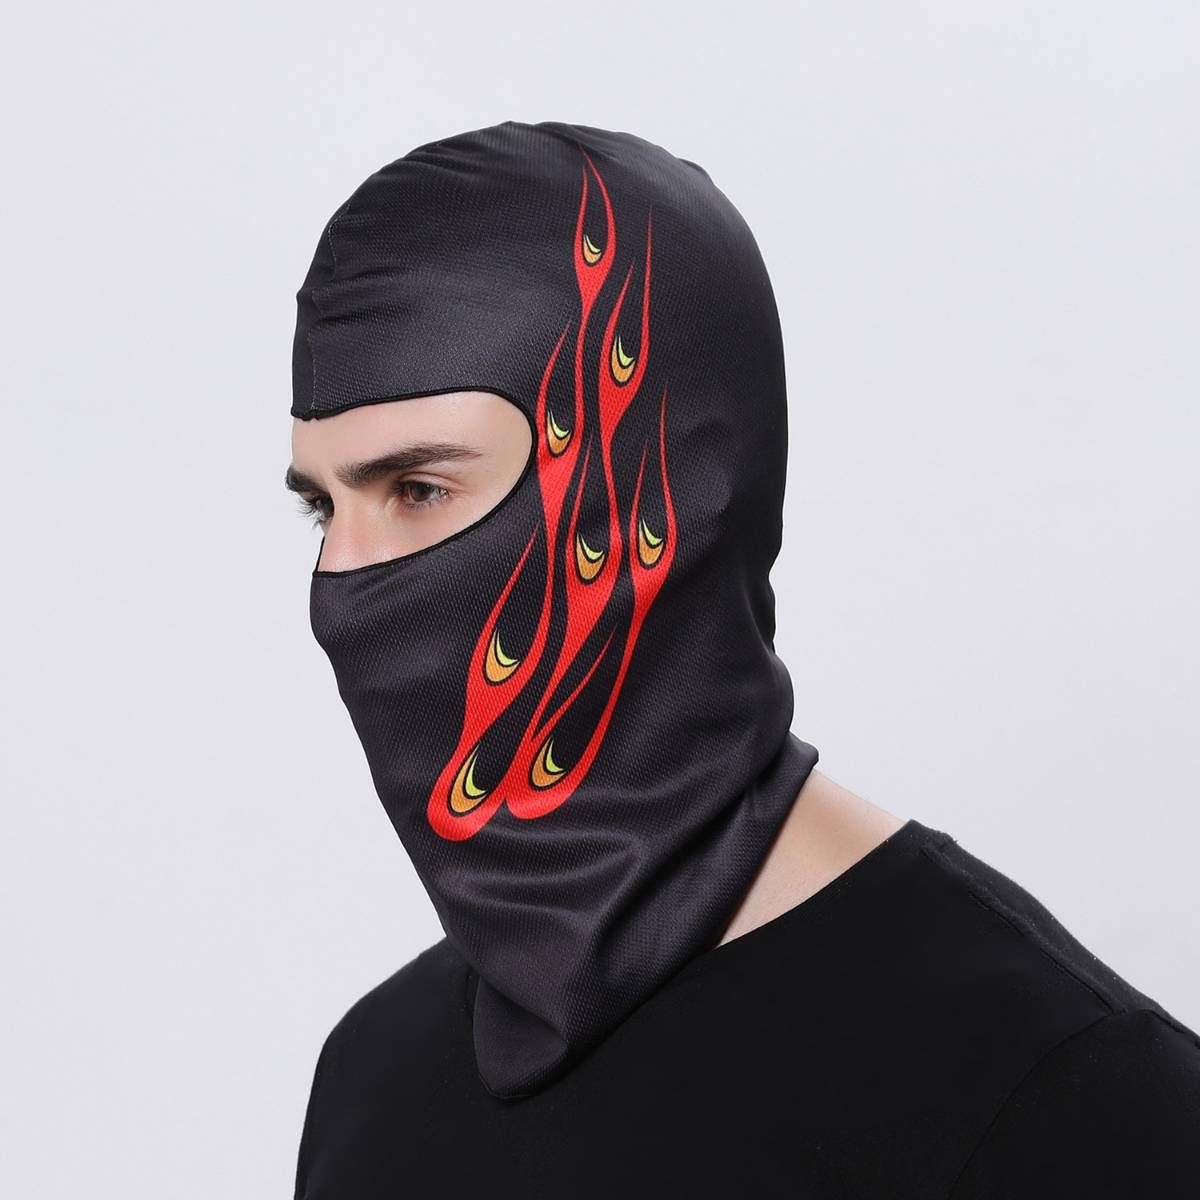 Masker Motor / Sepeda / Olah Raga Balaclava Motif 07